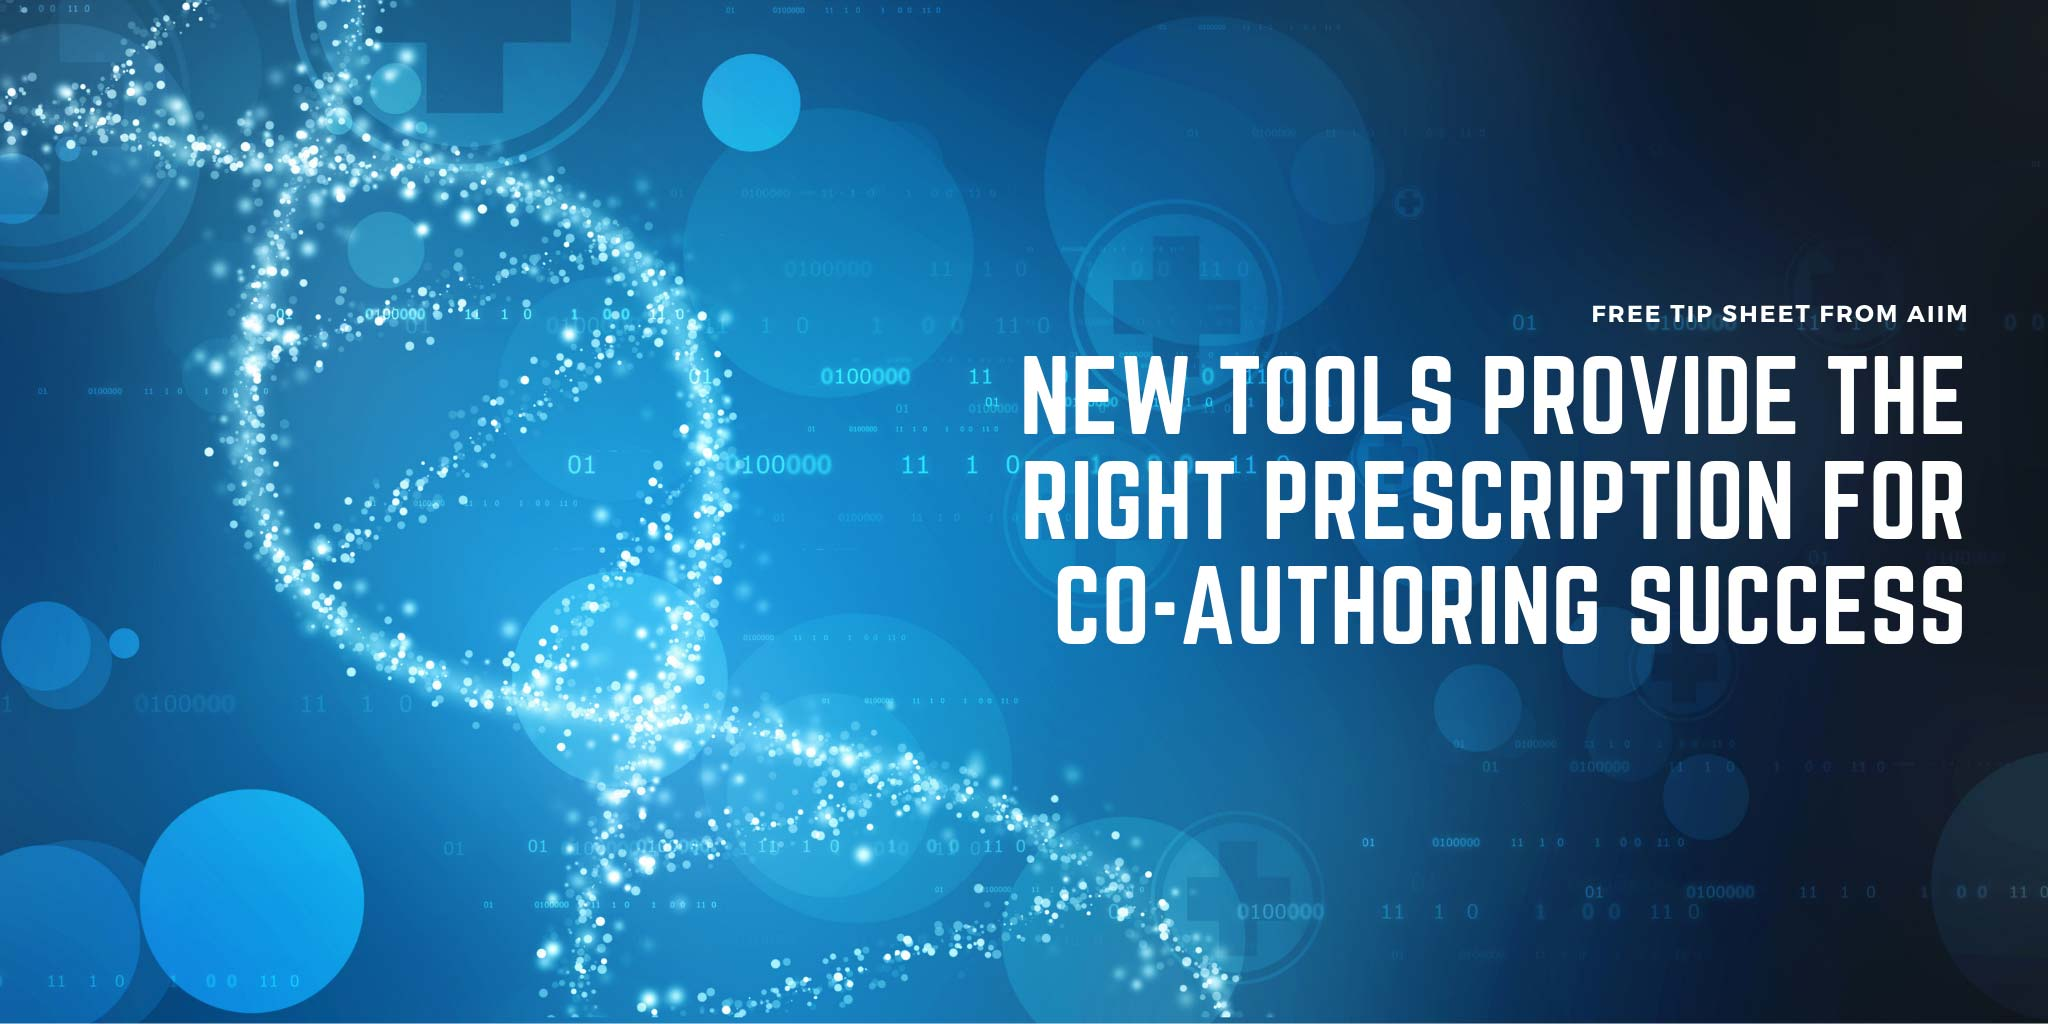 New-Tools-Provide-the-Right-Prescription-for-Co-authoring-Success-in-Pharmaceutical-and-Life-Science-Industries-SM